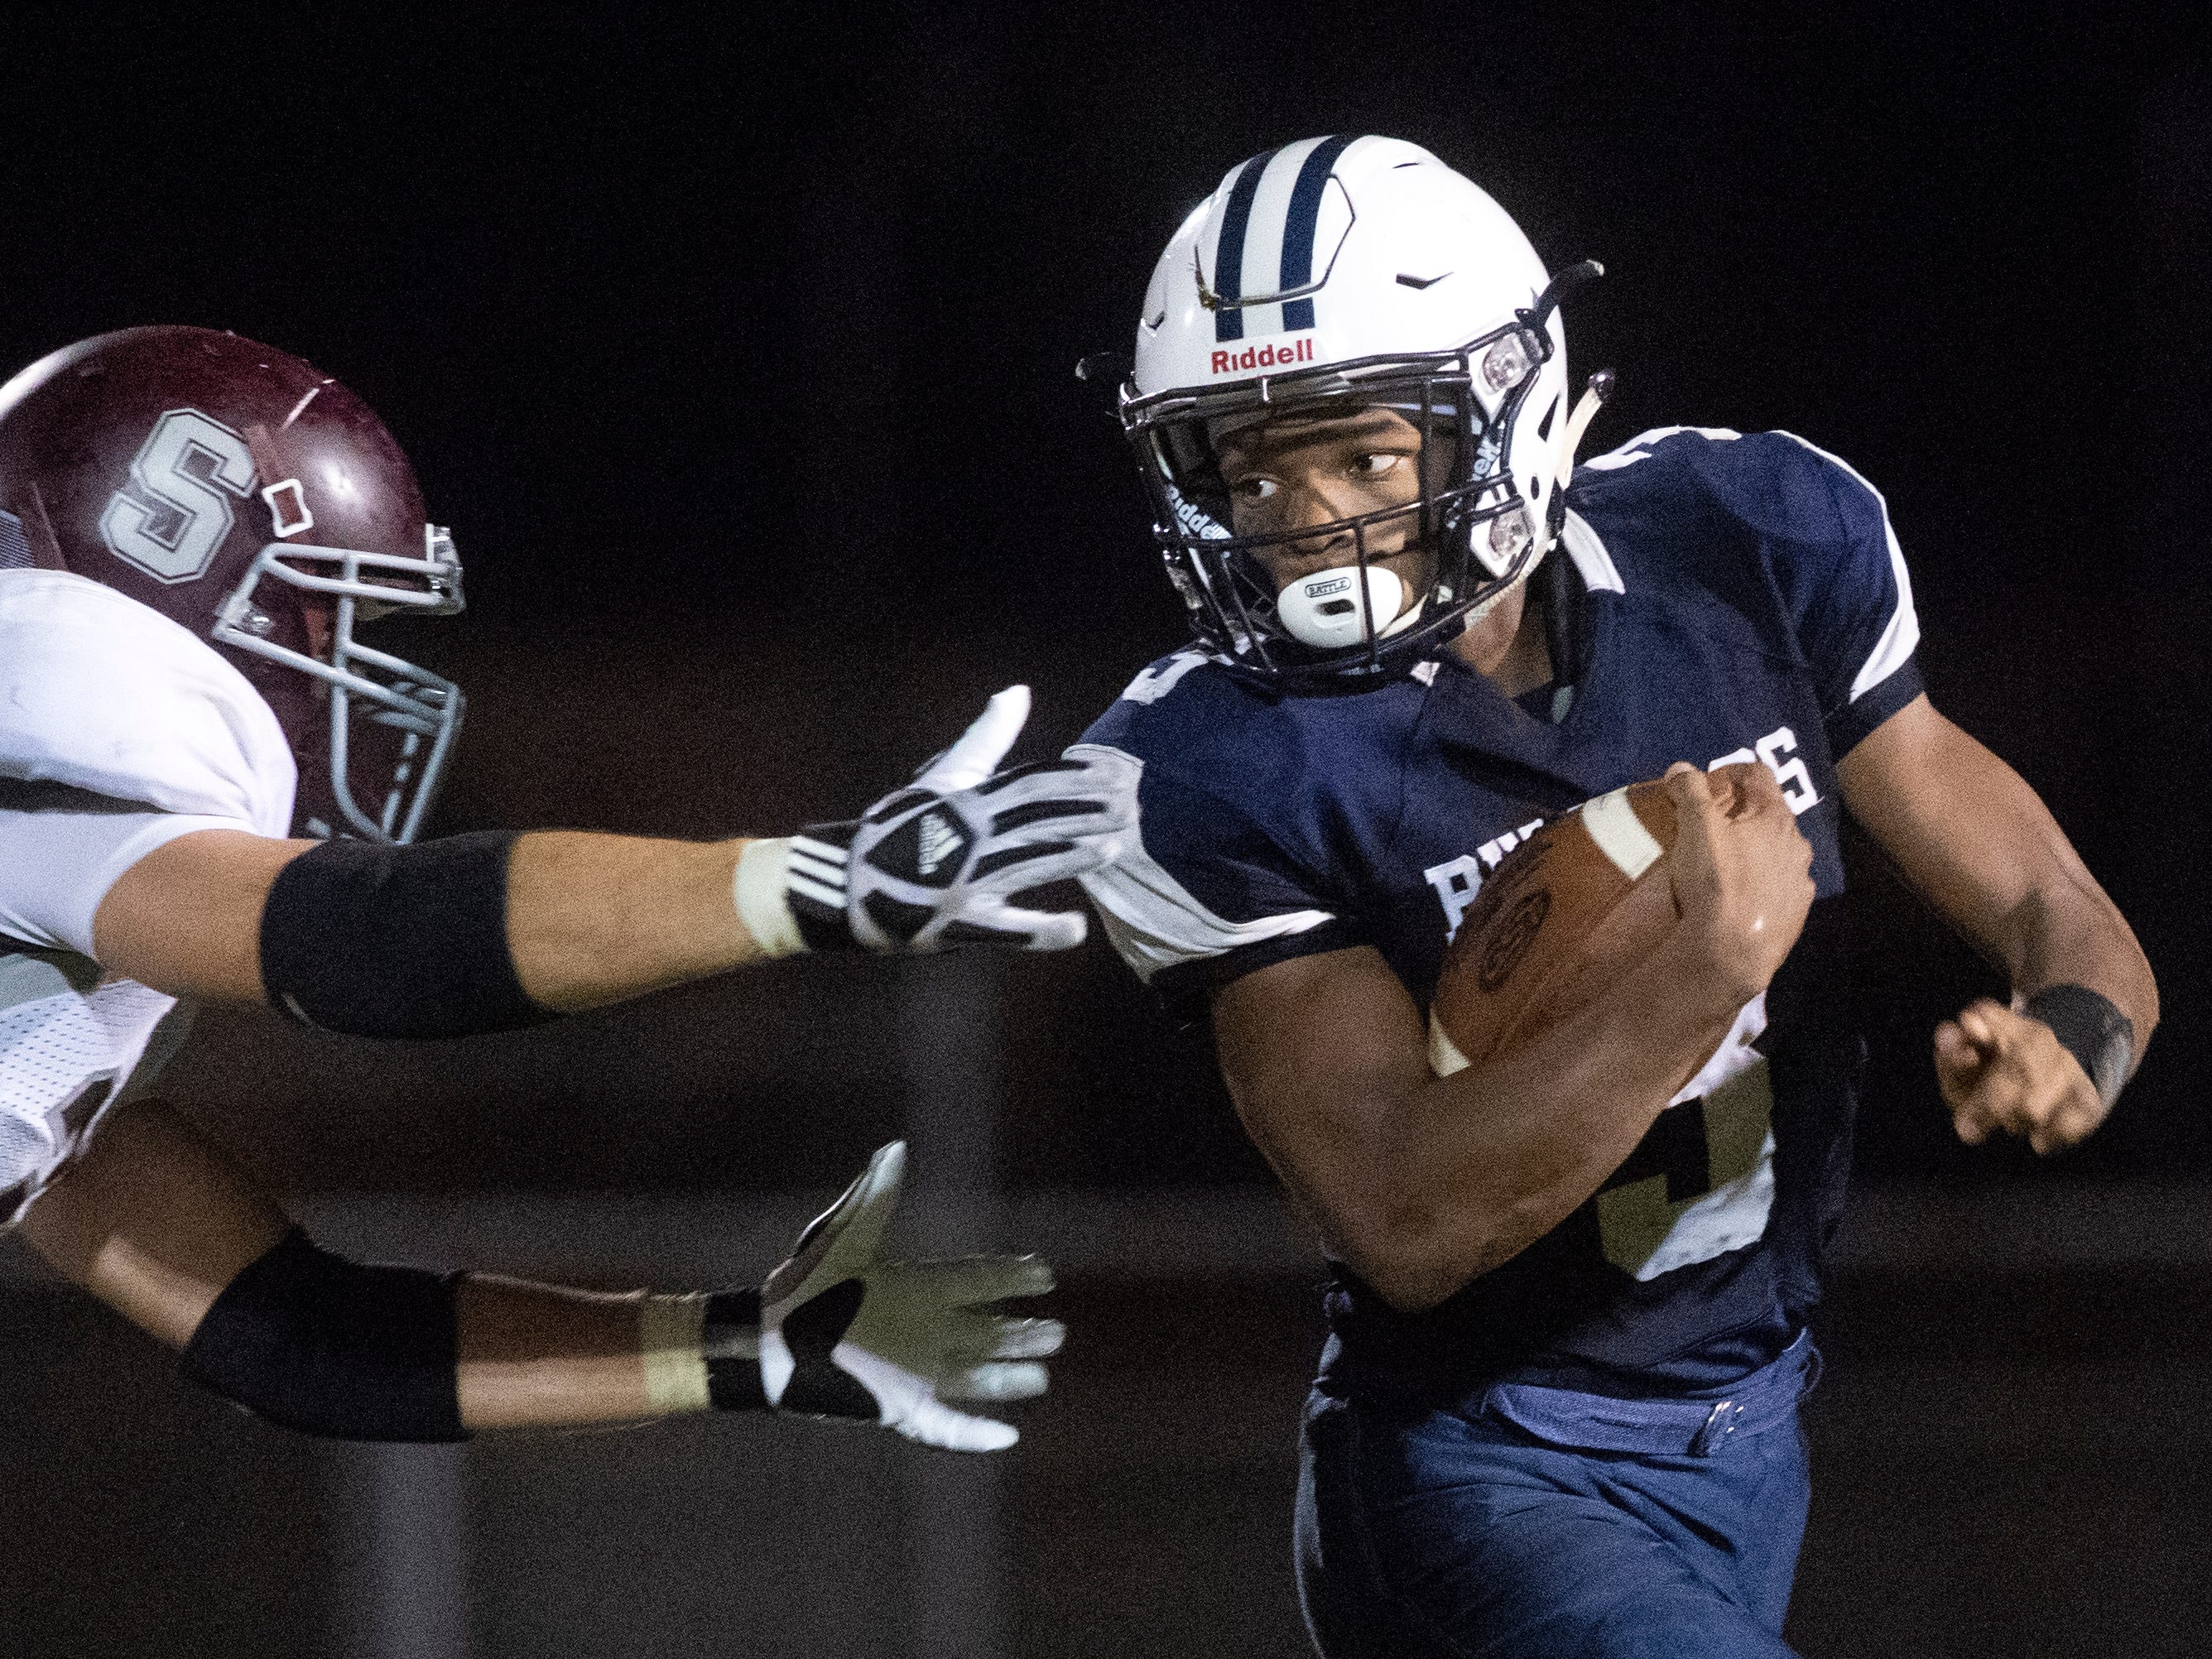 West York's Ay'jaun Marshall (3) dodges a tackle, Friday, Aug. 31, 2018. The Shippensburg Greyhounds beat the West York Bulldgos, 21-14.